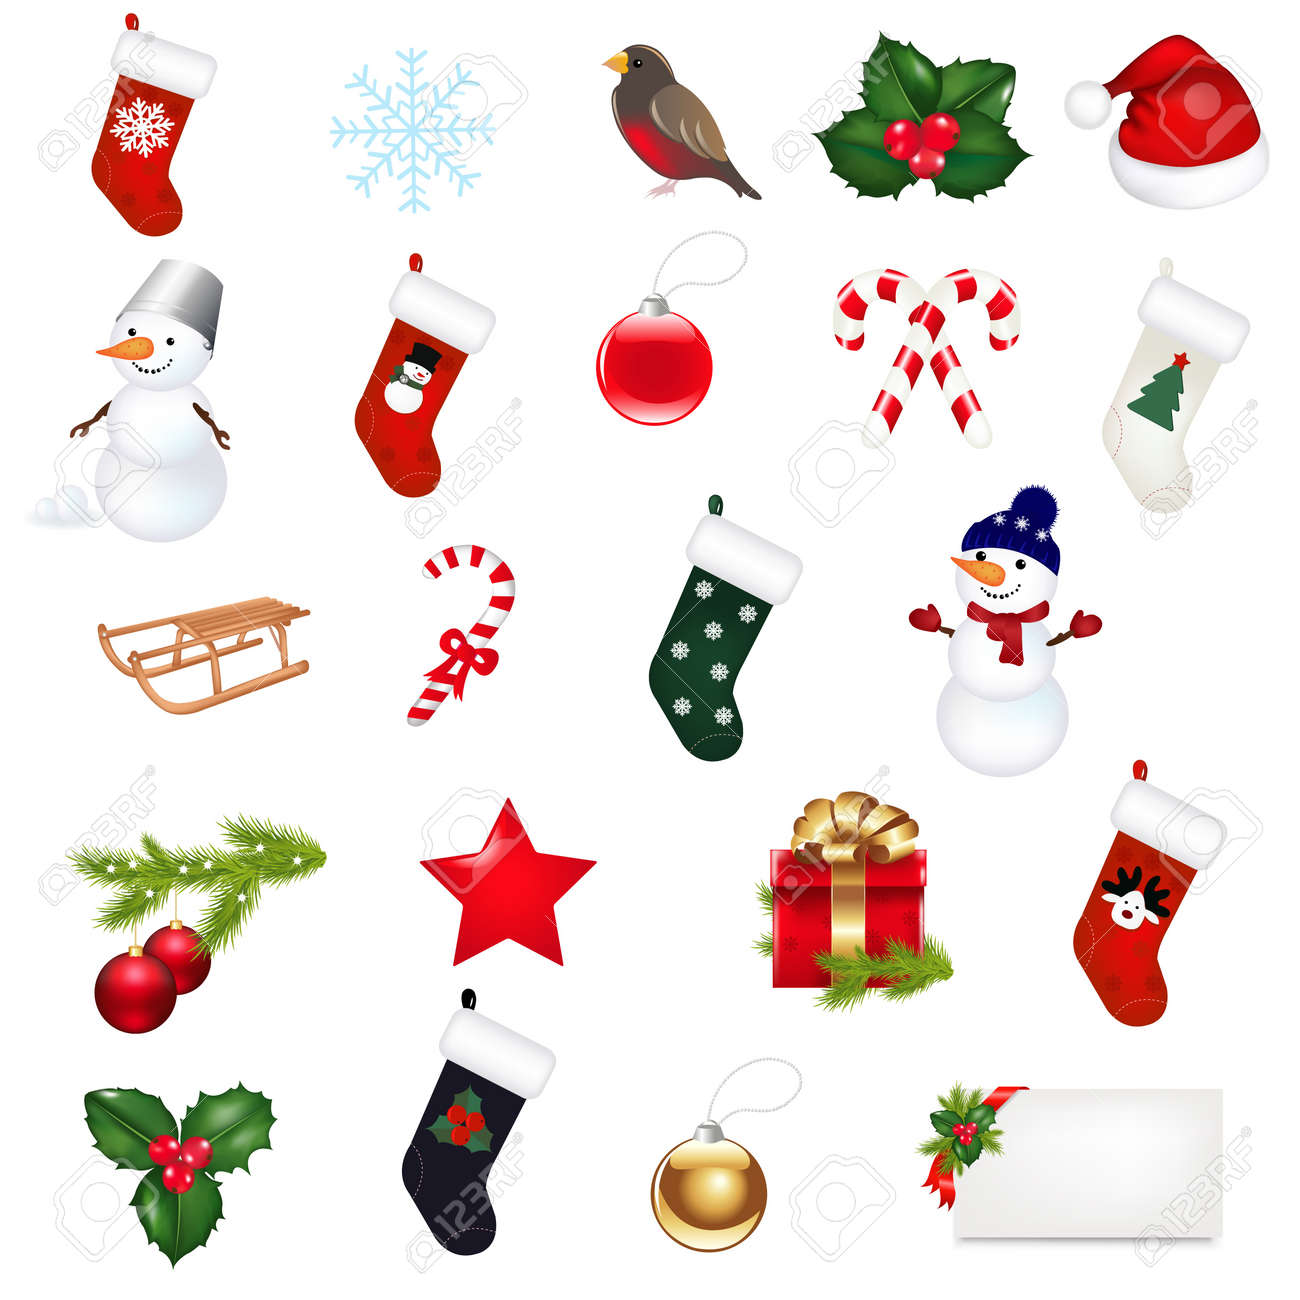 Big Christmas Icons Set, Isolated On White Background, Vector Illustration Stock Vector - 11561520